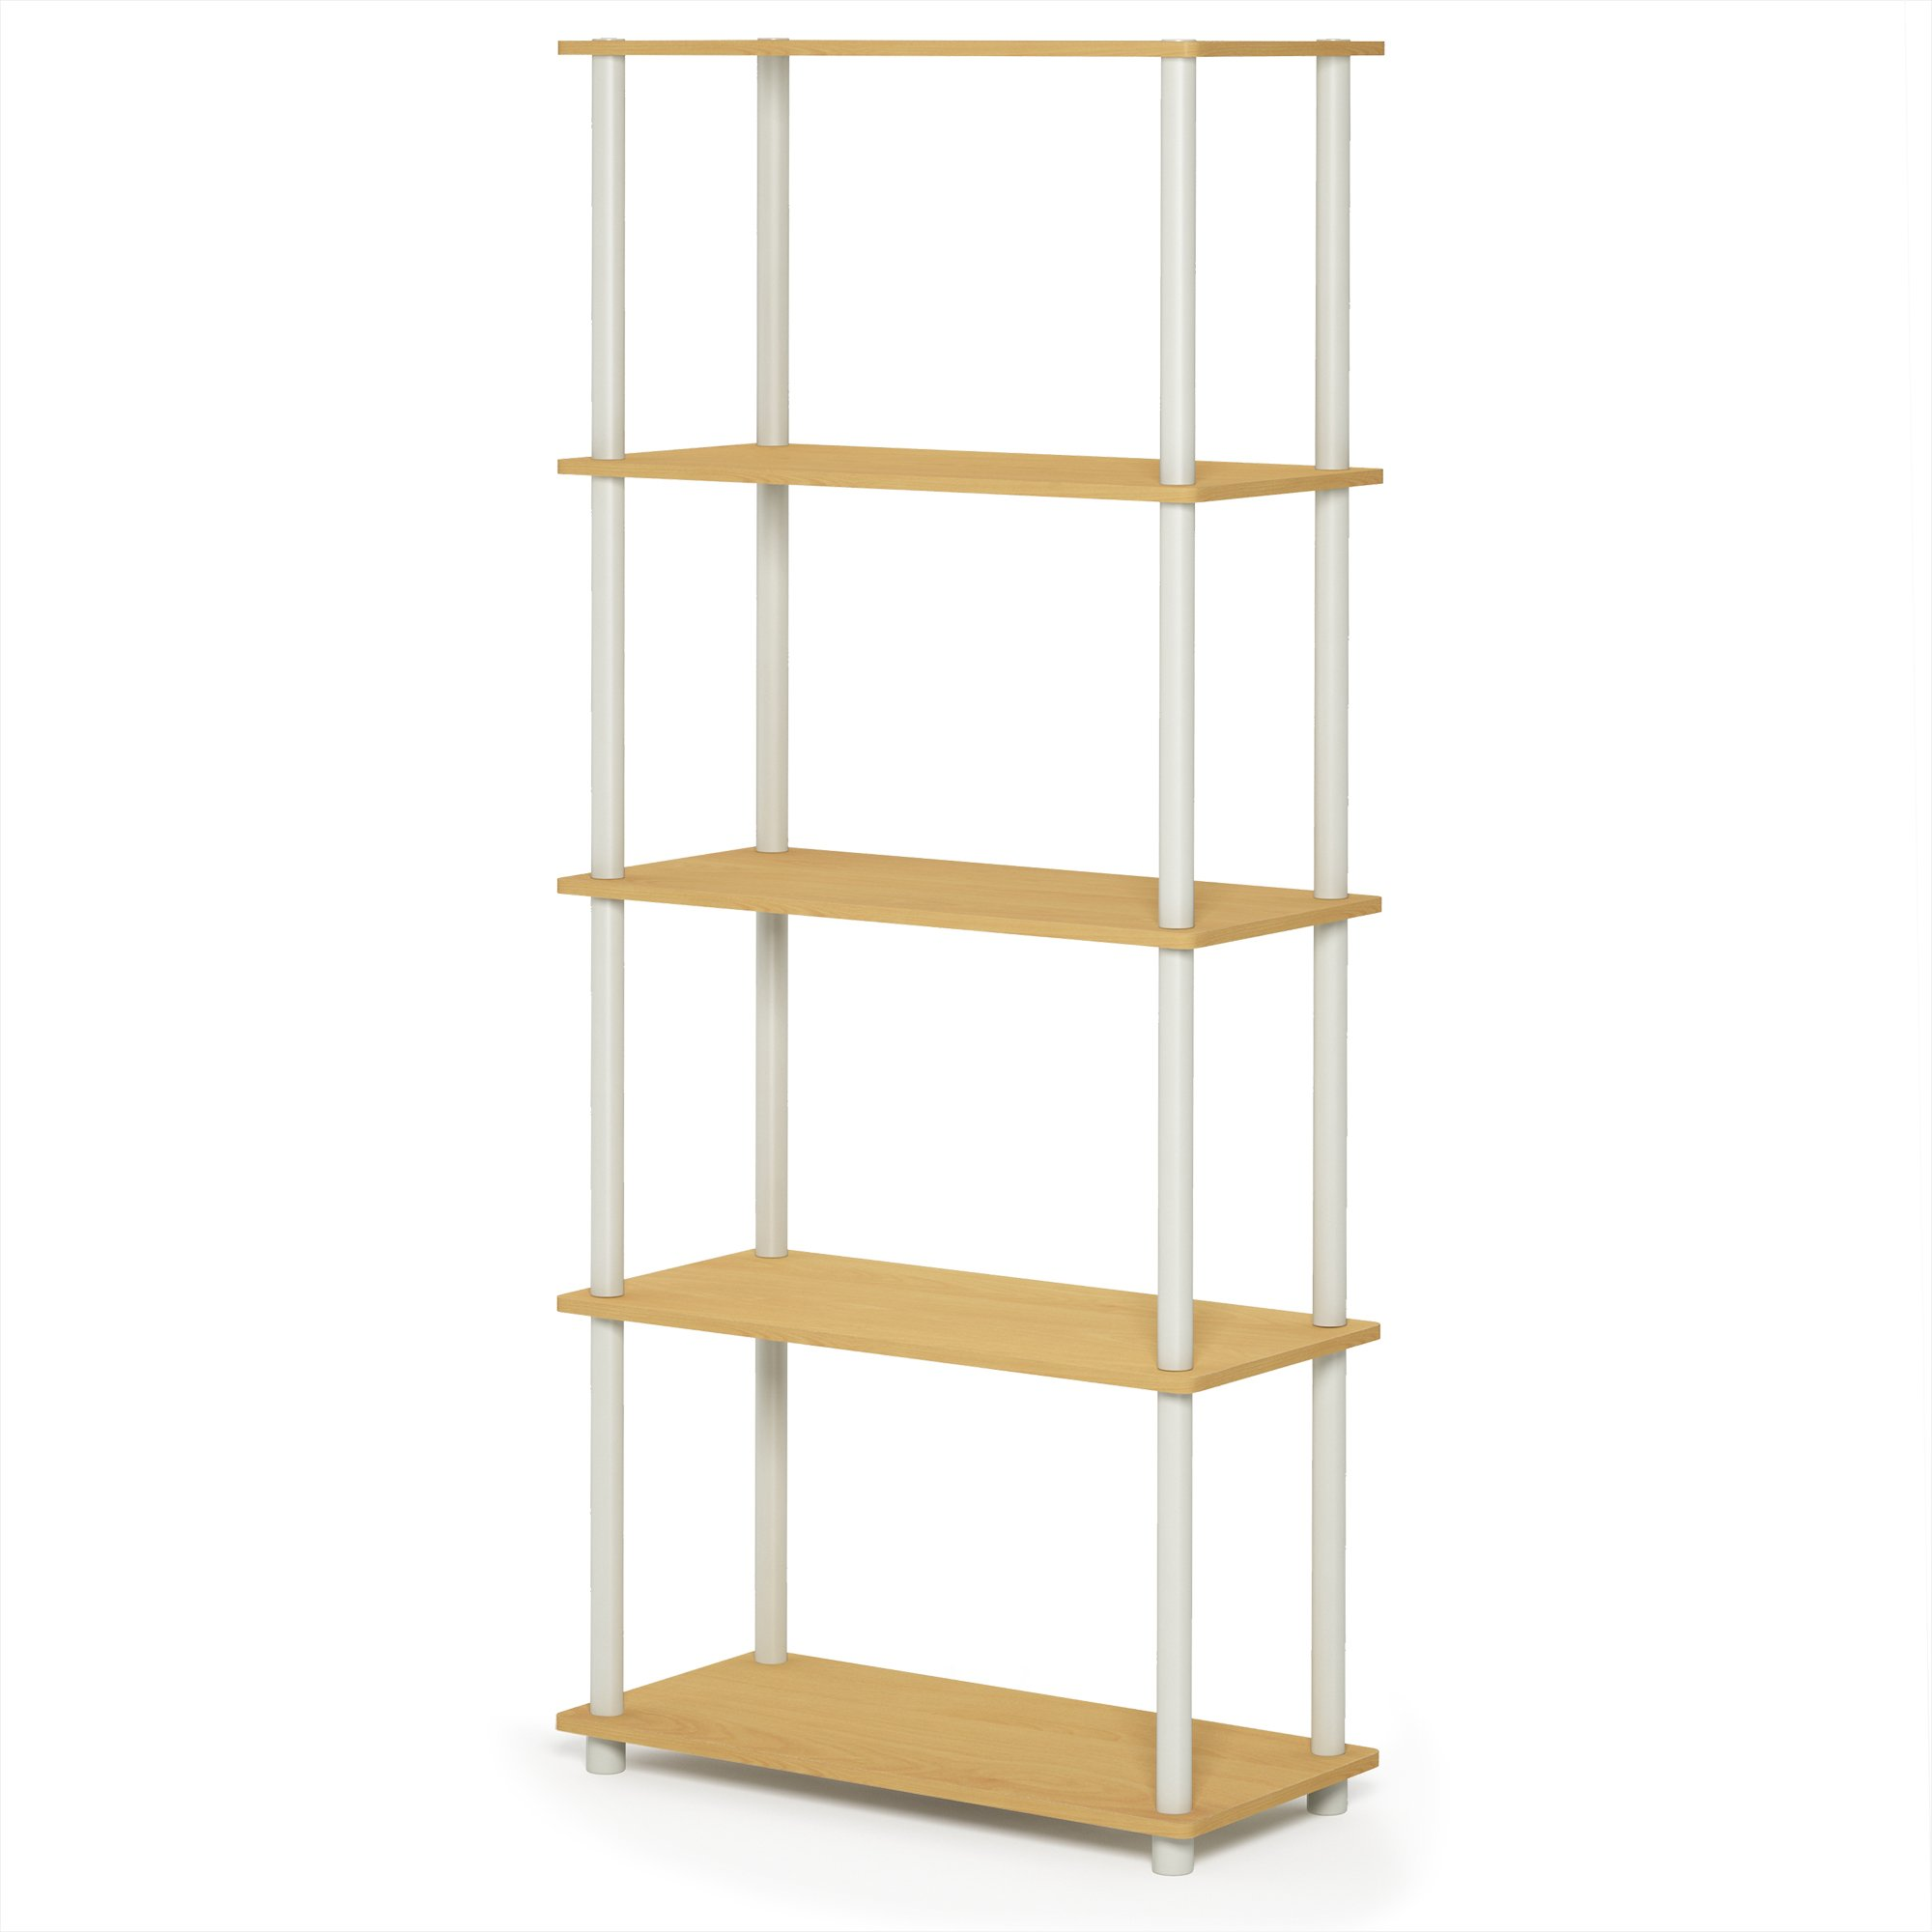 FURINNO 17091BE/WH Turn-N-Tube 5-Tier Compact Multipurpose Shelf, Single, Beech/White by Furinno